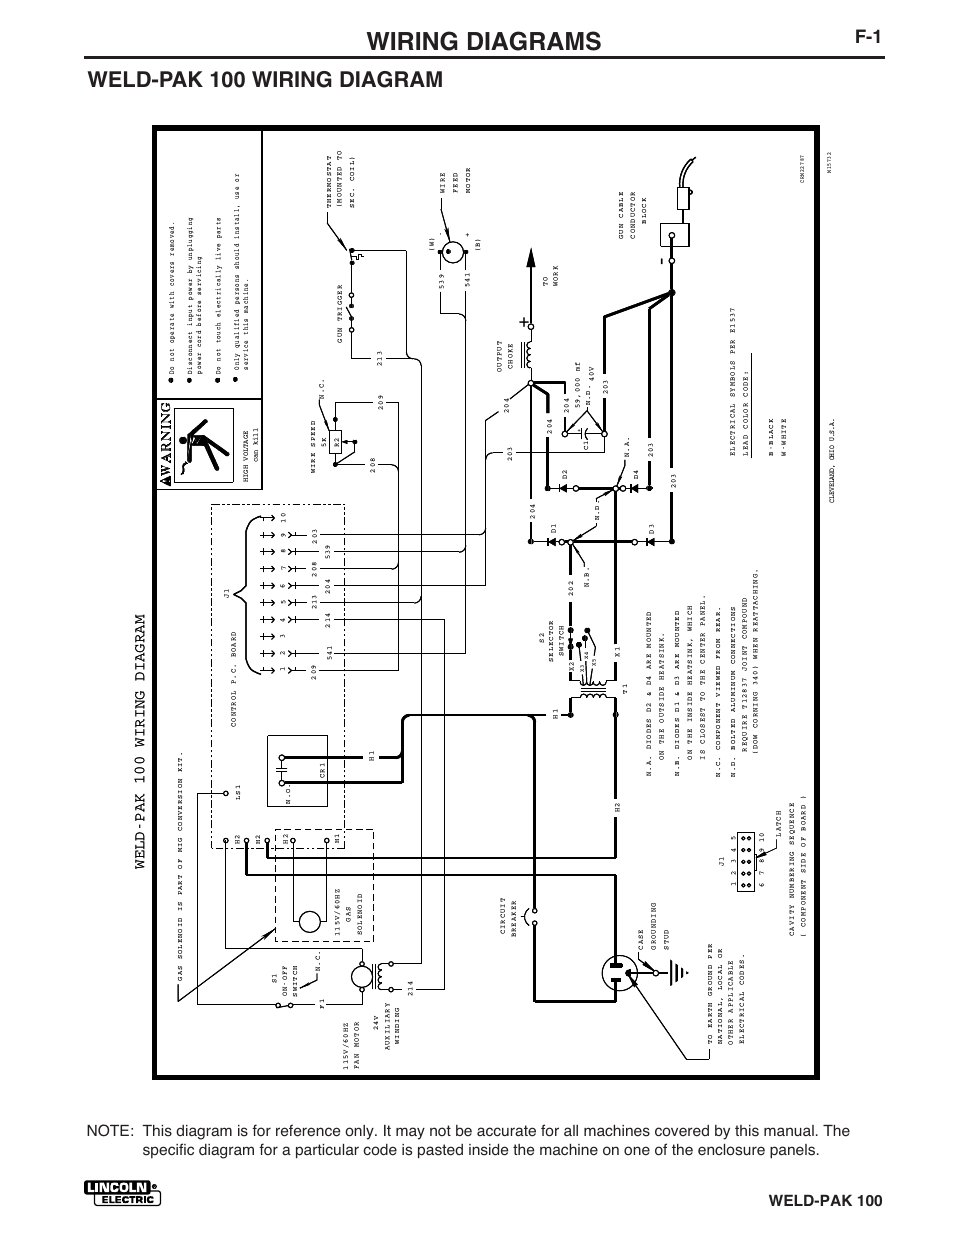 Wiring Schematic 1999 Lincoln Continental Motor Diagram Just Data Diagrams Weld Pak 100 1997 Engine